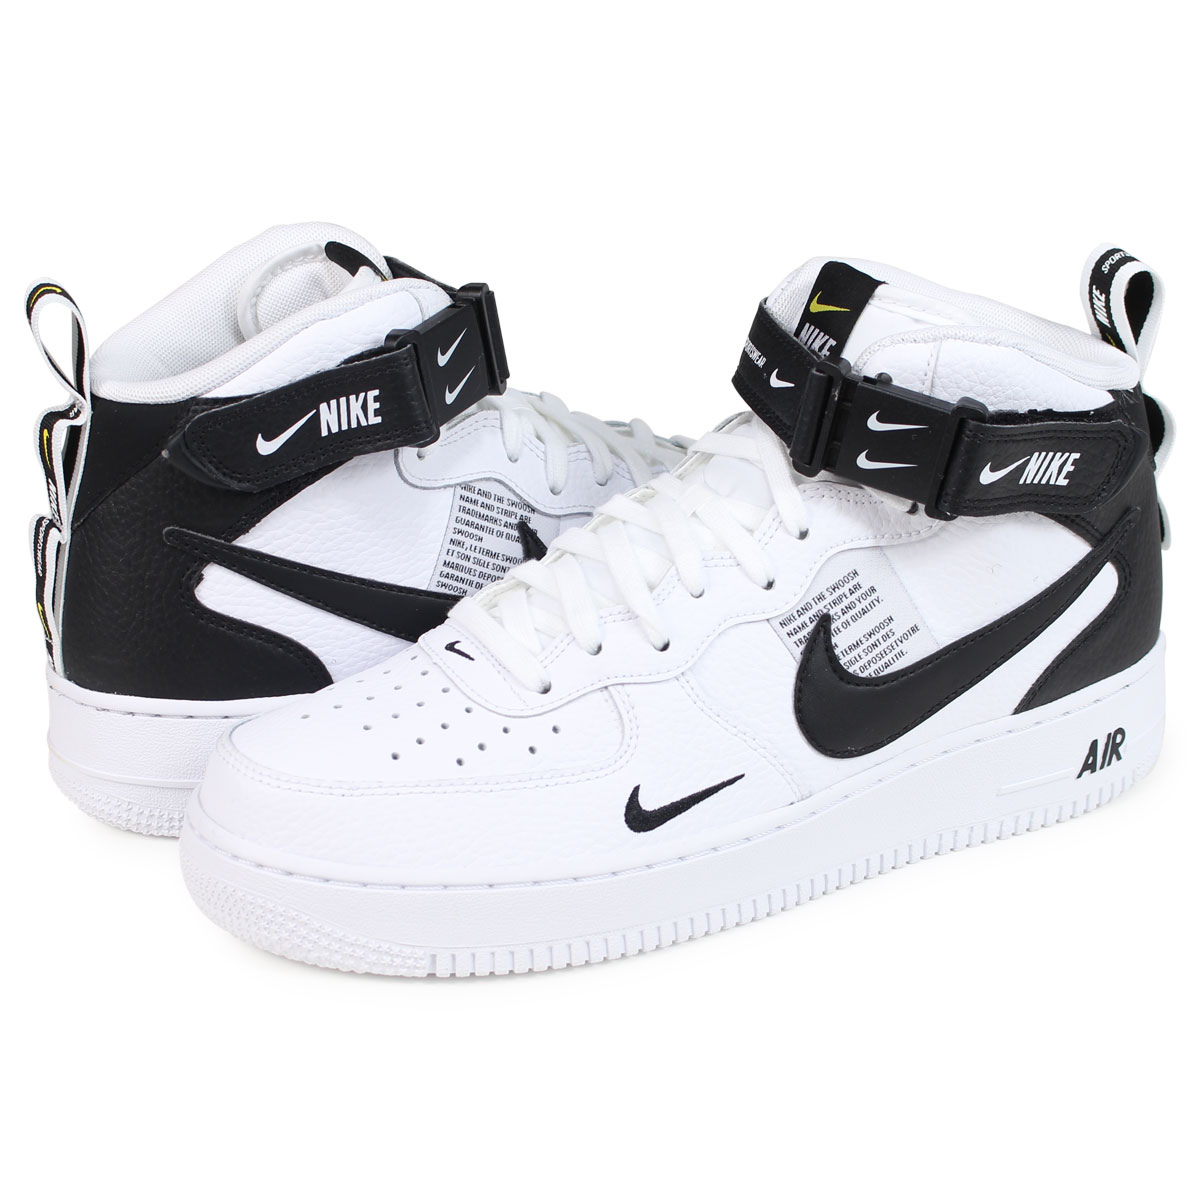 quality design d7f18 a7012  brand NIKE getting high popularity from sneakers freak